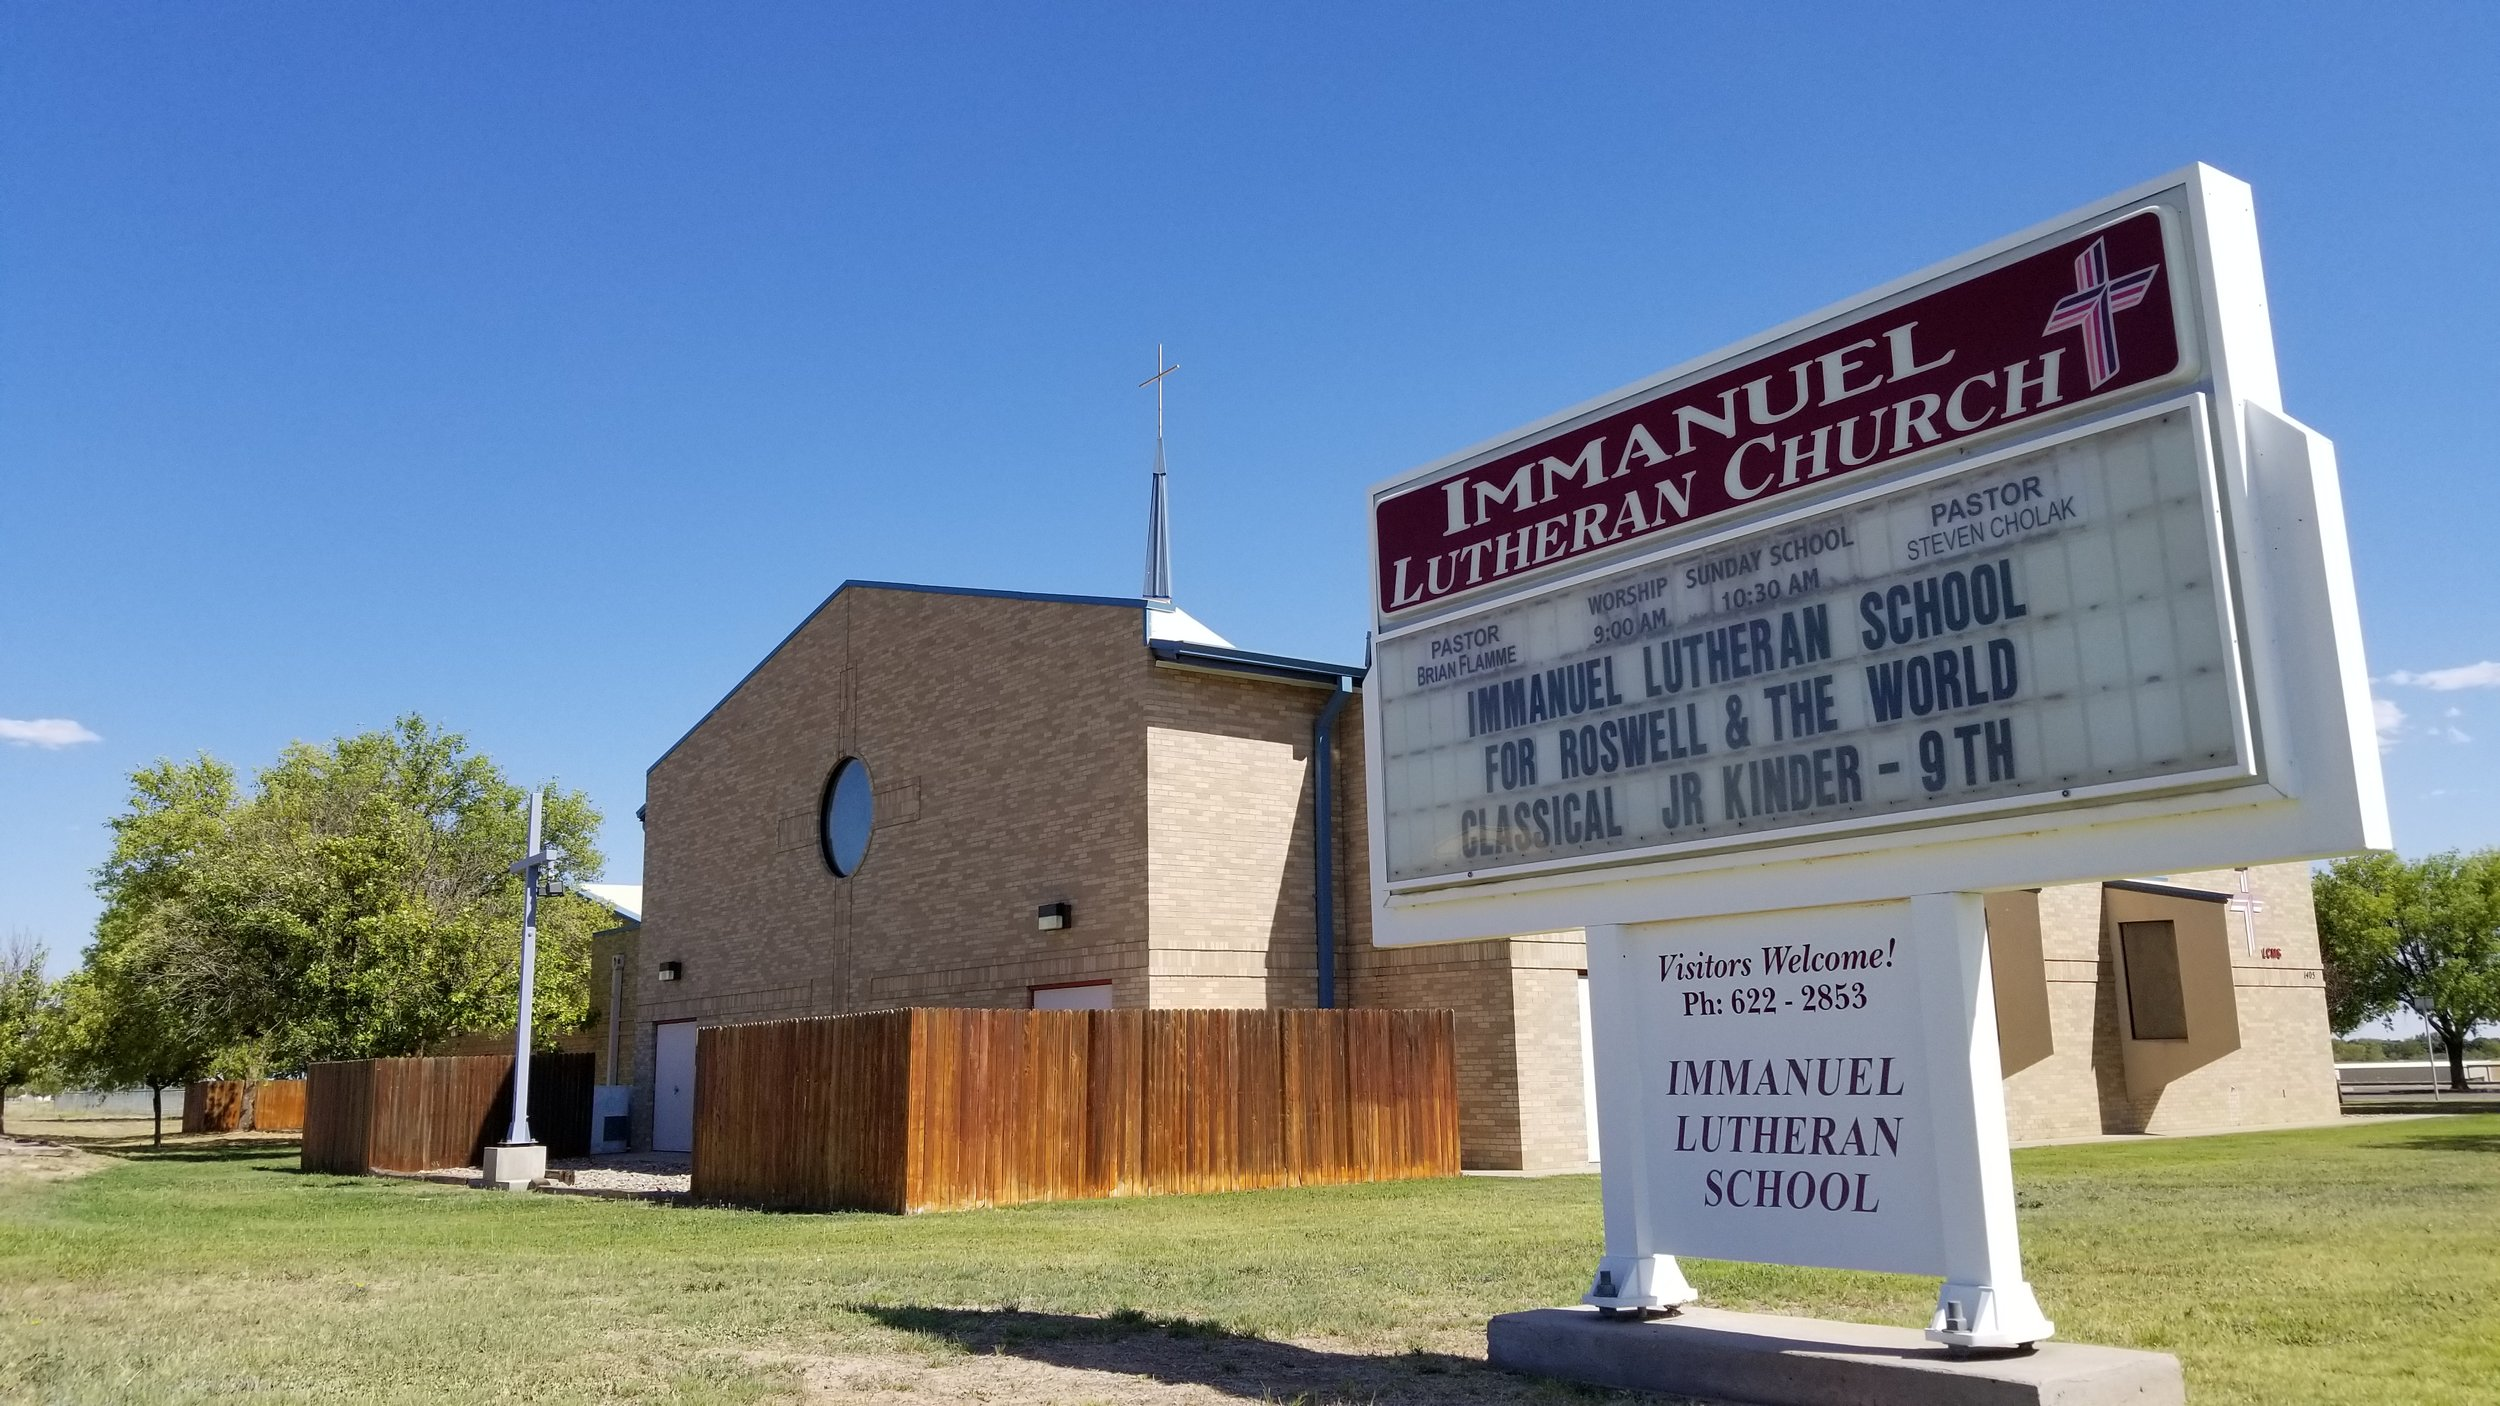 Welcome! We are A Biblical and liturgical lutheran church in roswell, new mexico -